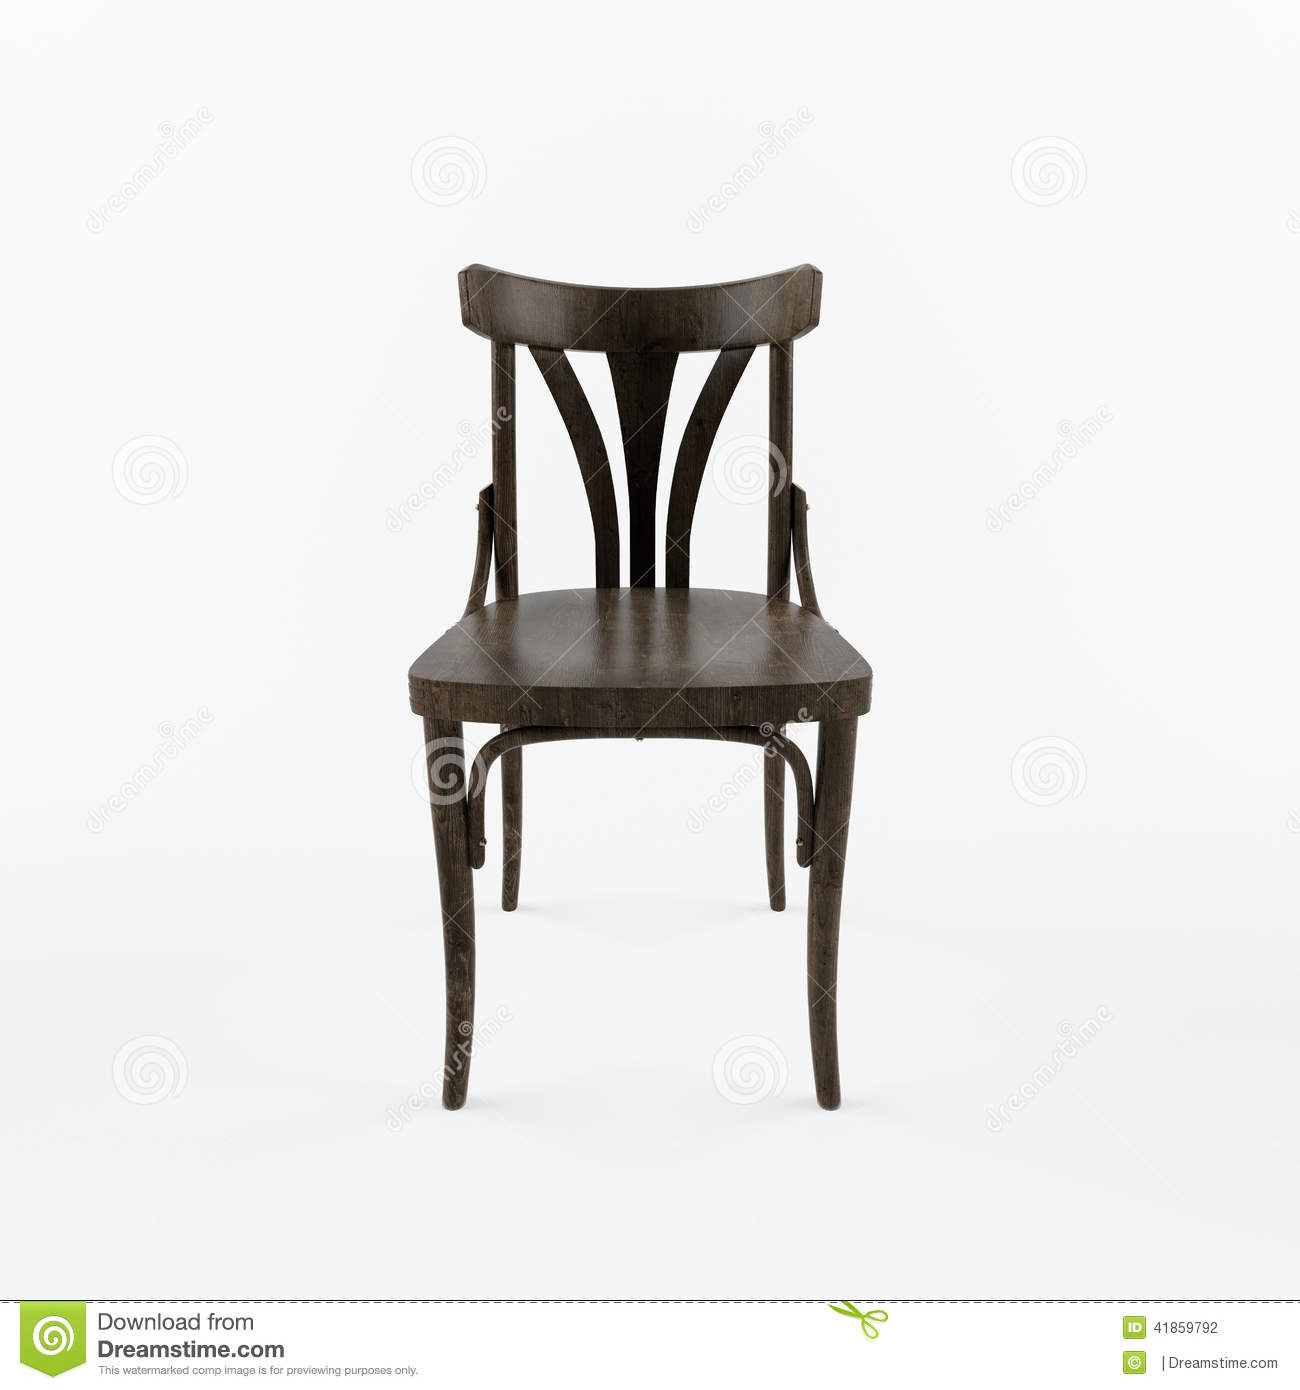 Wooden chair front view - 3 D Retro Chair Front View Wooden Chair Front View